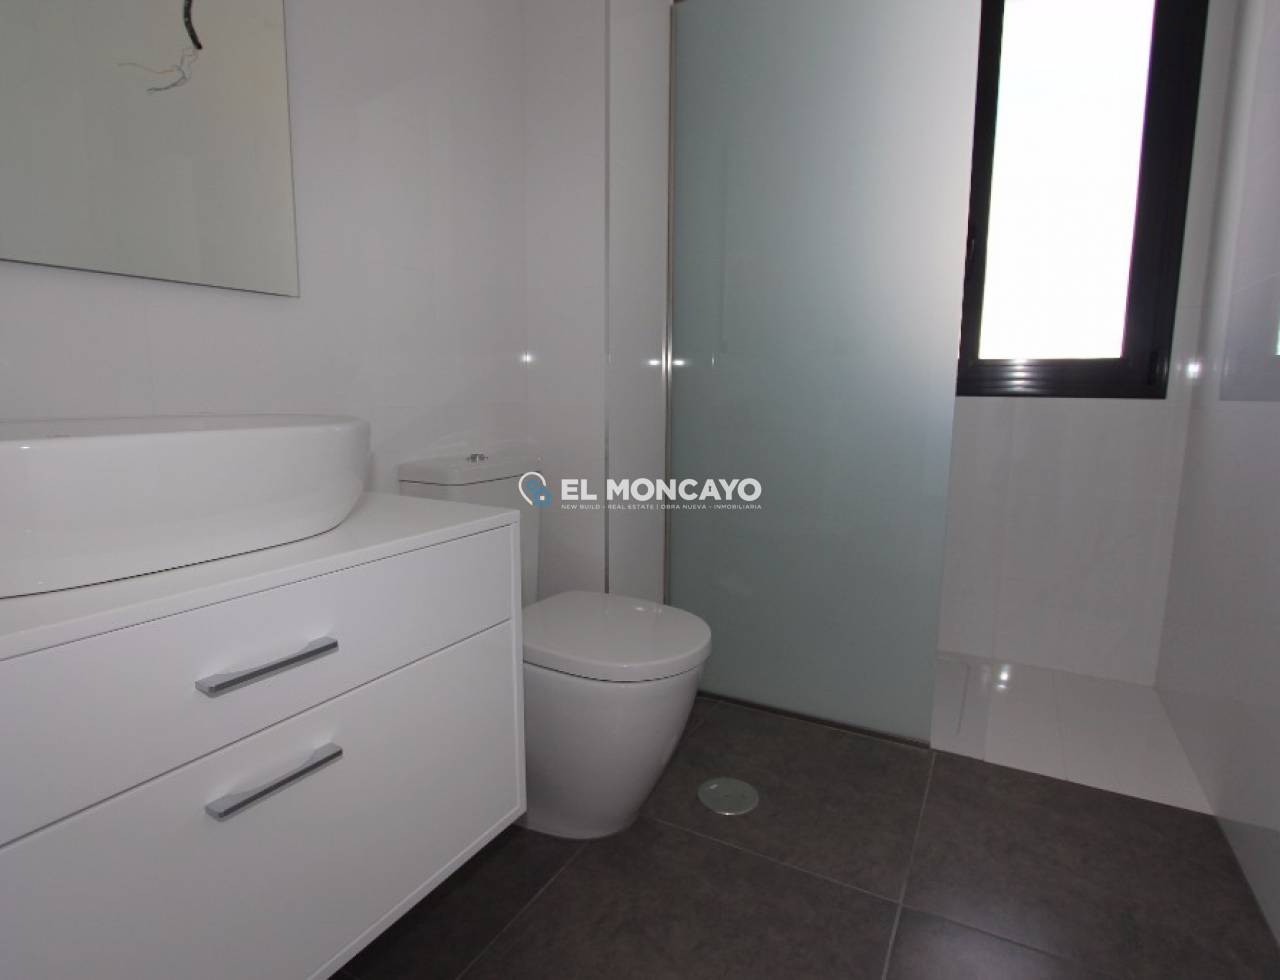 Penthouse duplex in Villamartín - Orihuela Costa (Costa Blanca South) 119 (14)